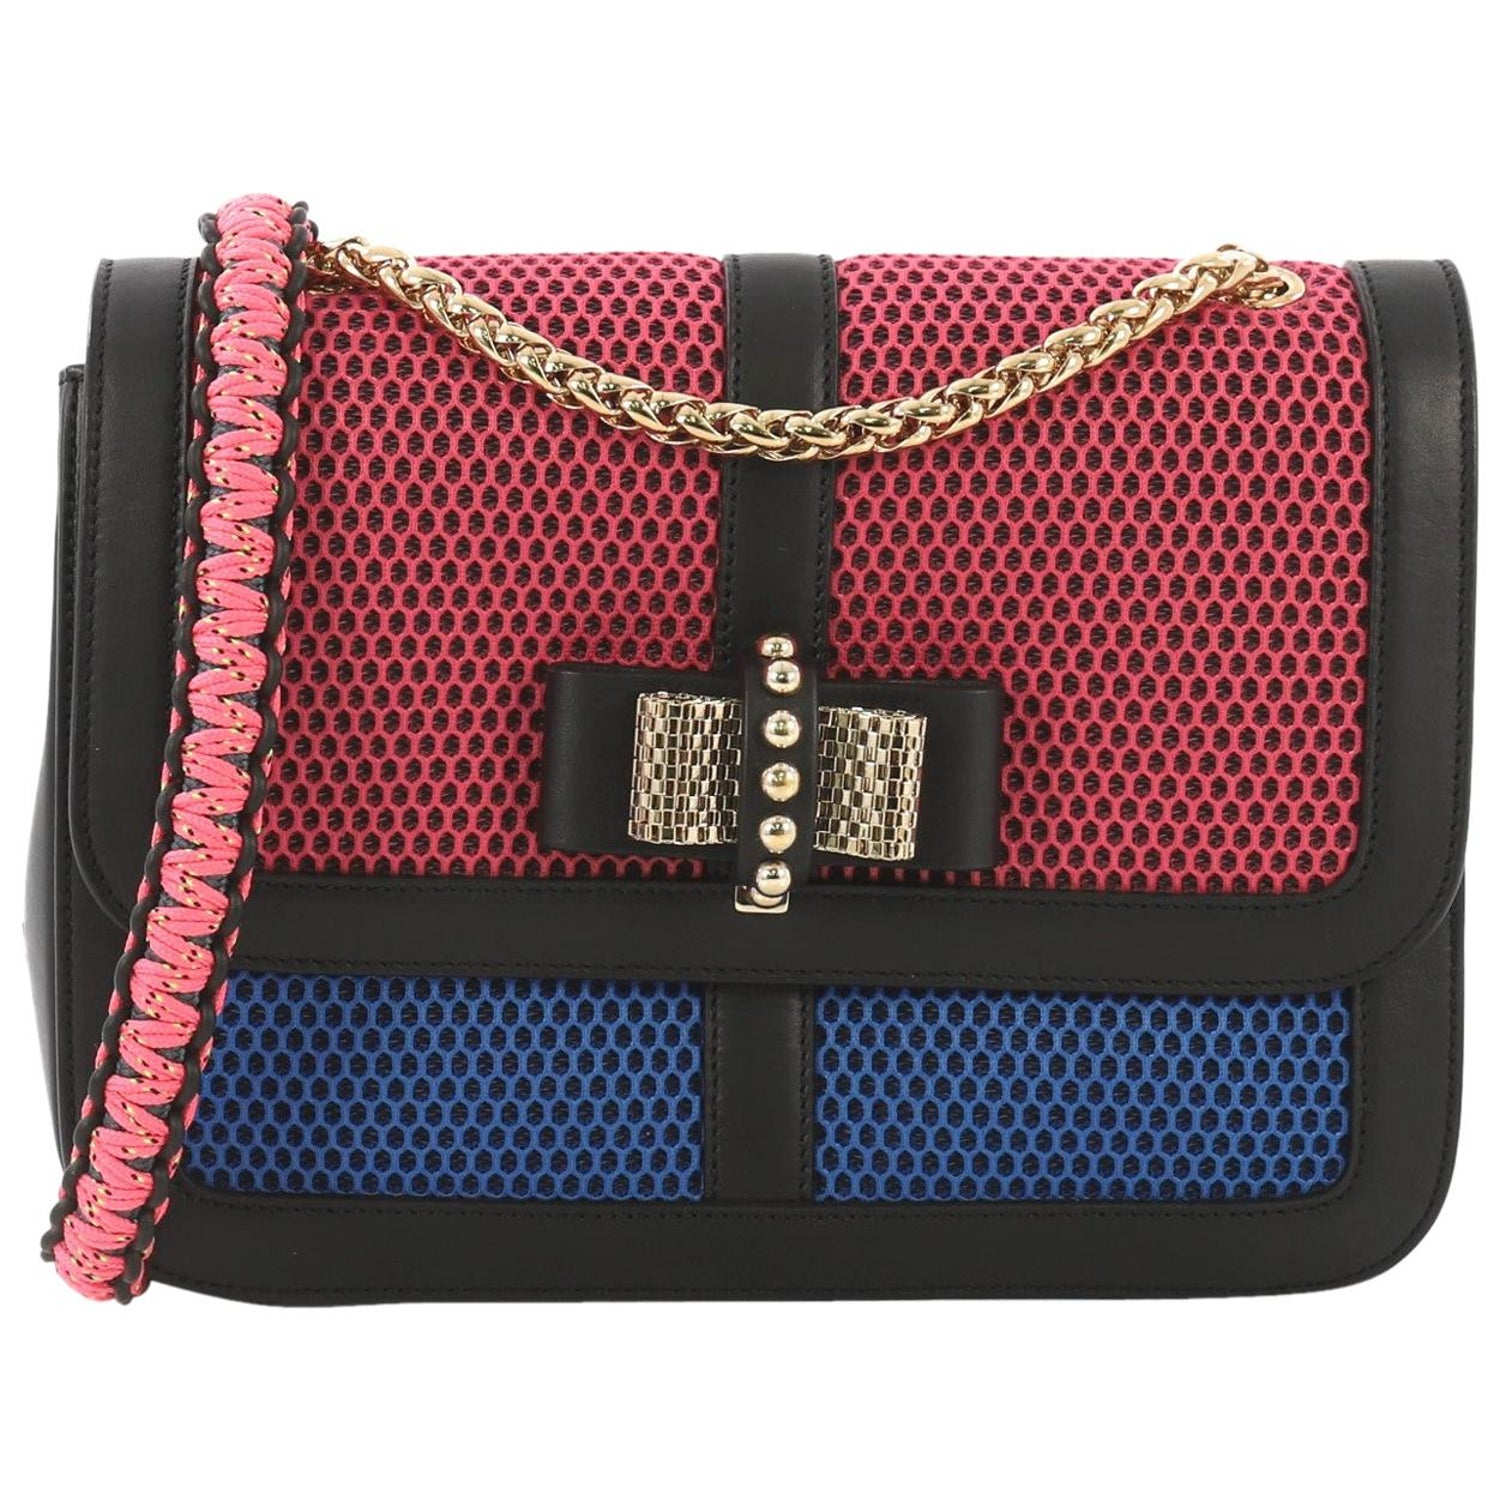 15abb5a7538 Christian Louboutin Sweet Charity Crossbody Bag Mesh and Leather Small